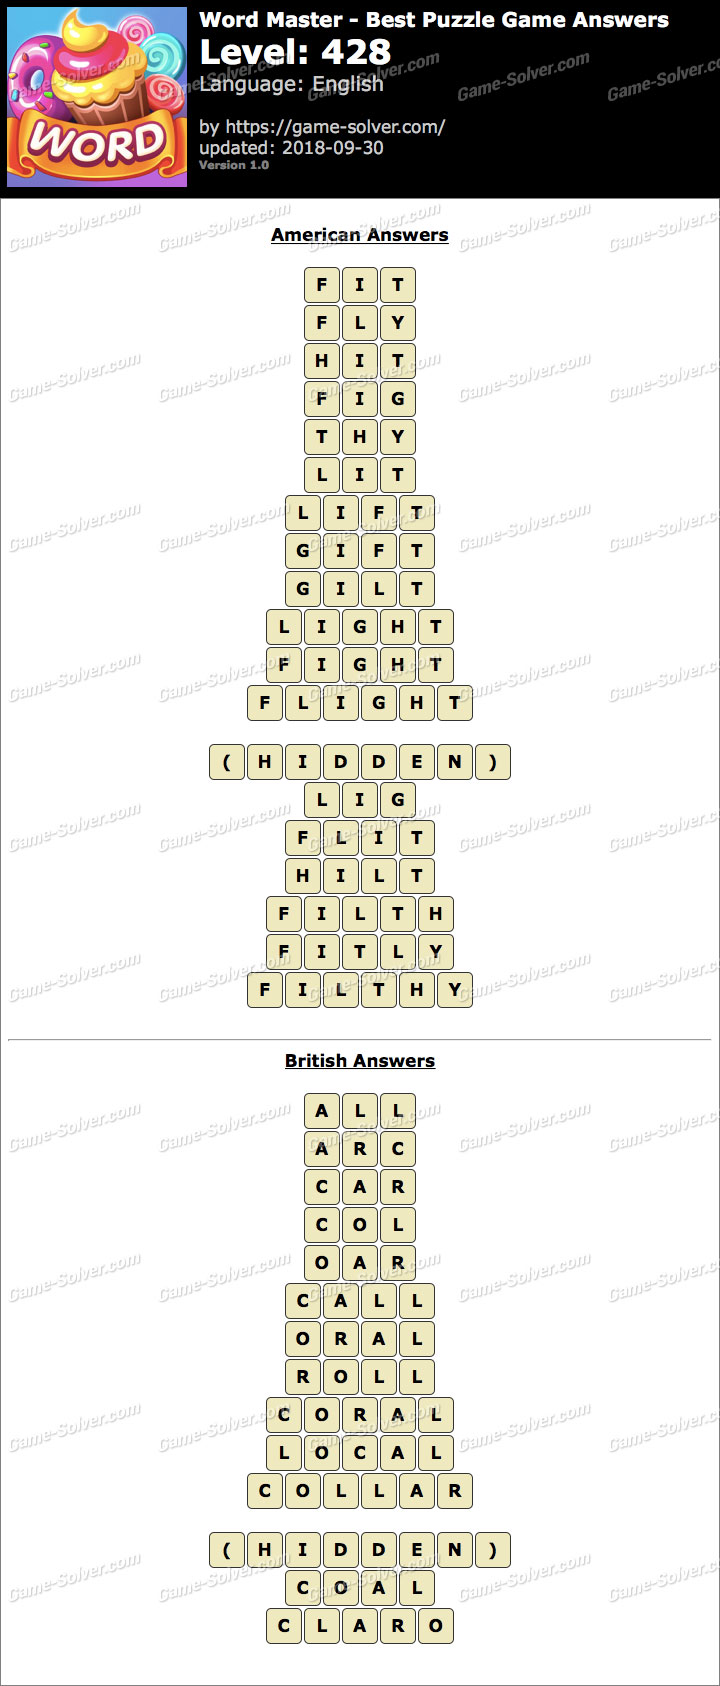 Word Master-Best Puzzle Game Level 428 Answers